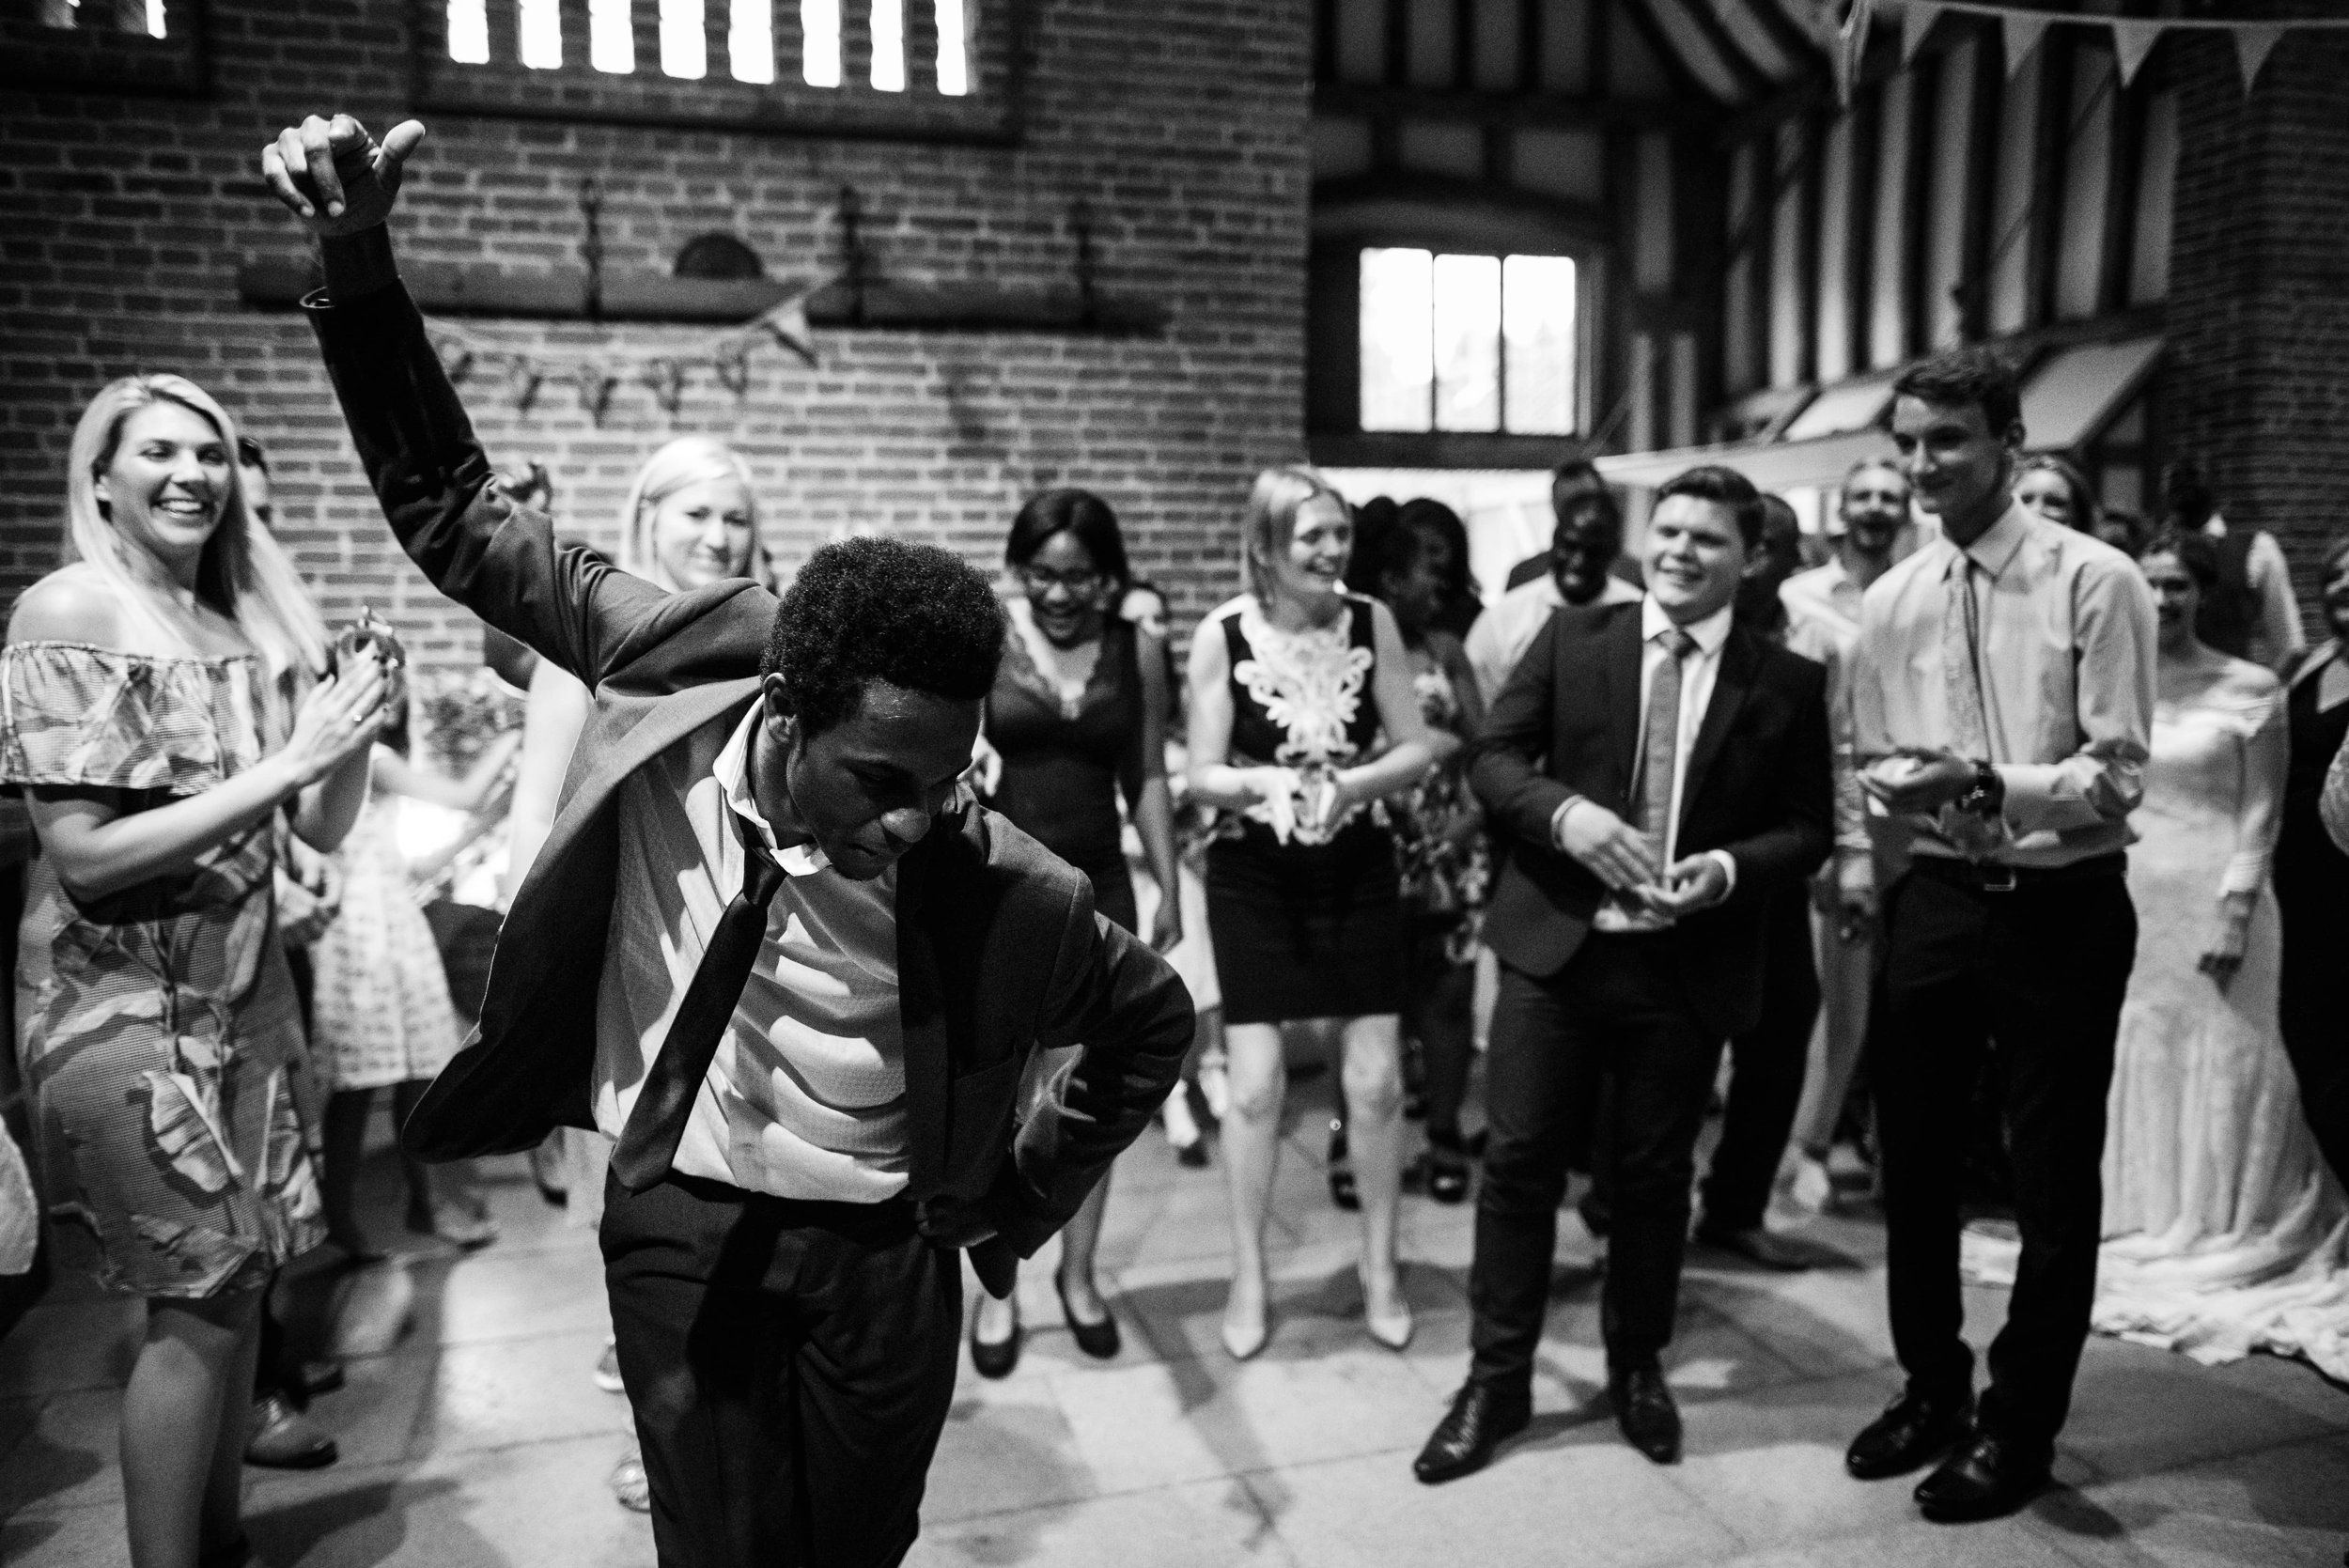 Haughley Park Barn Wedding Photography - Megan & Myles (19).jpg